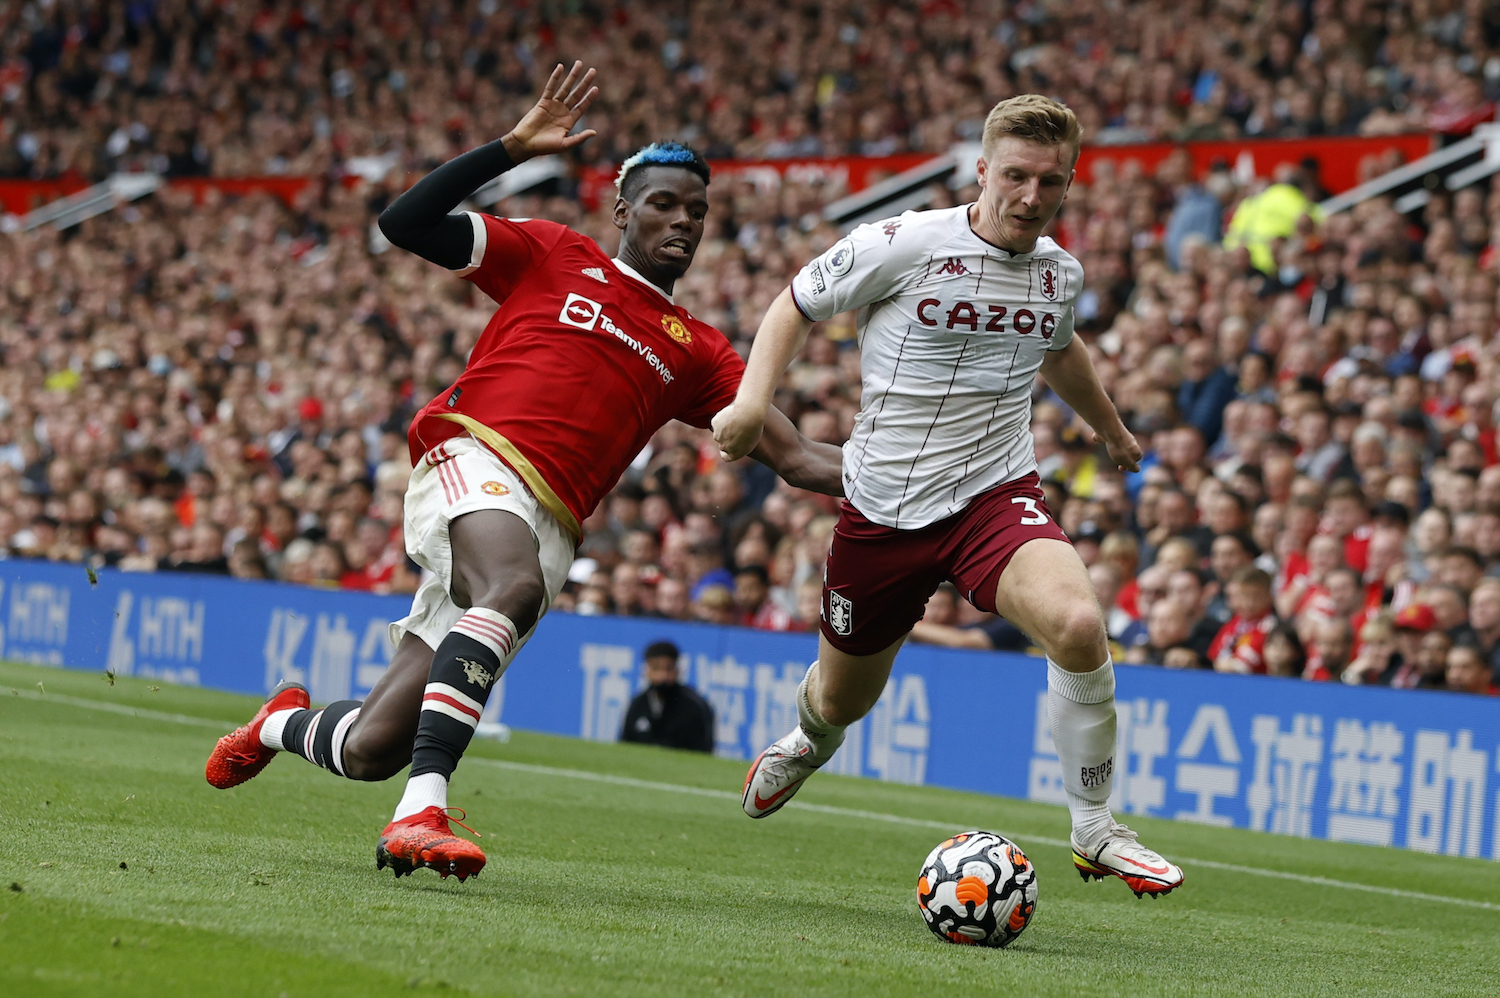 Mixed fortunes for Manchester clubs